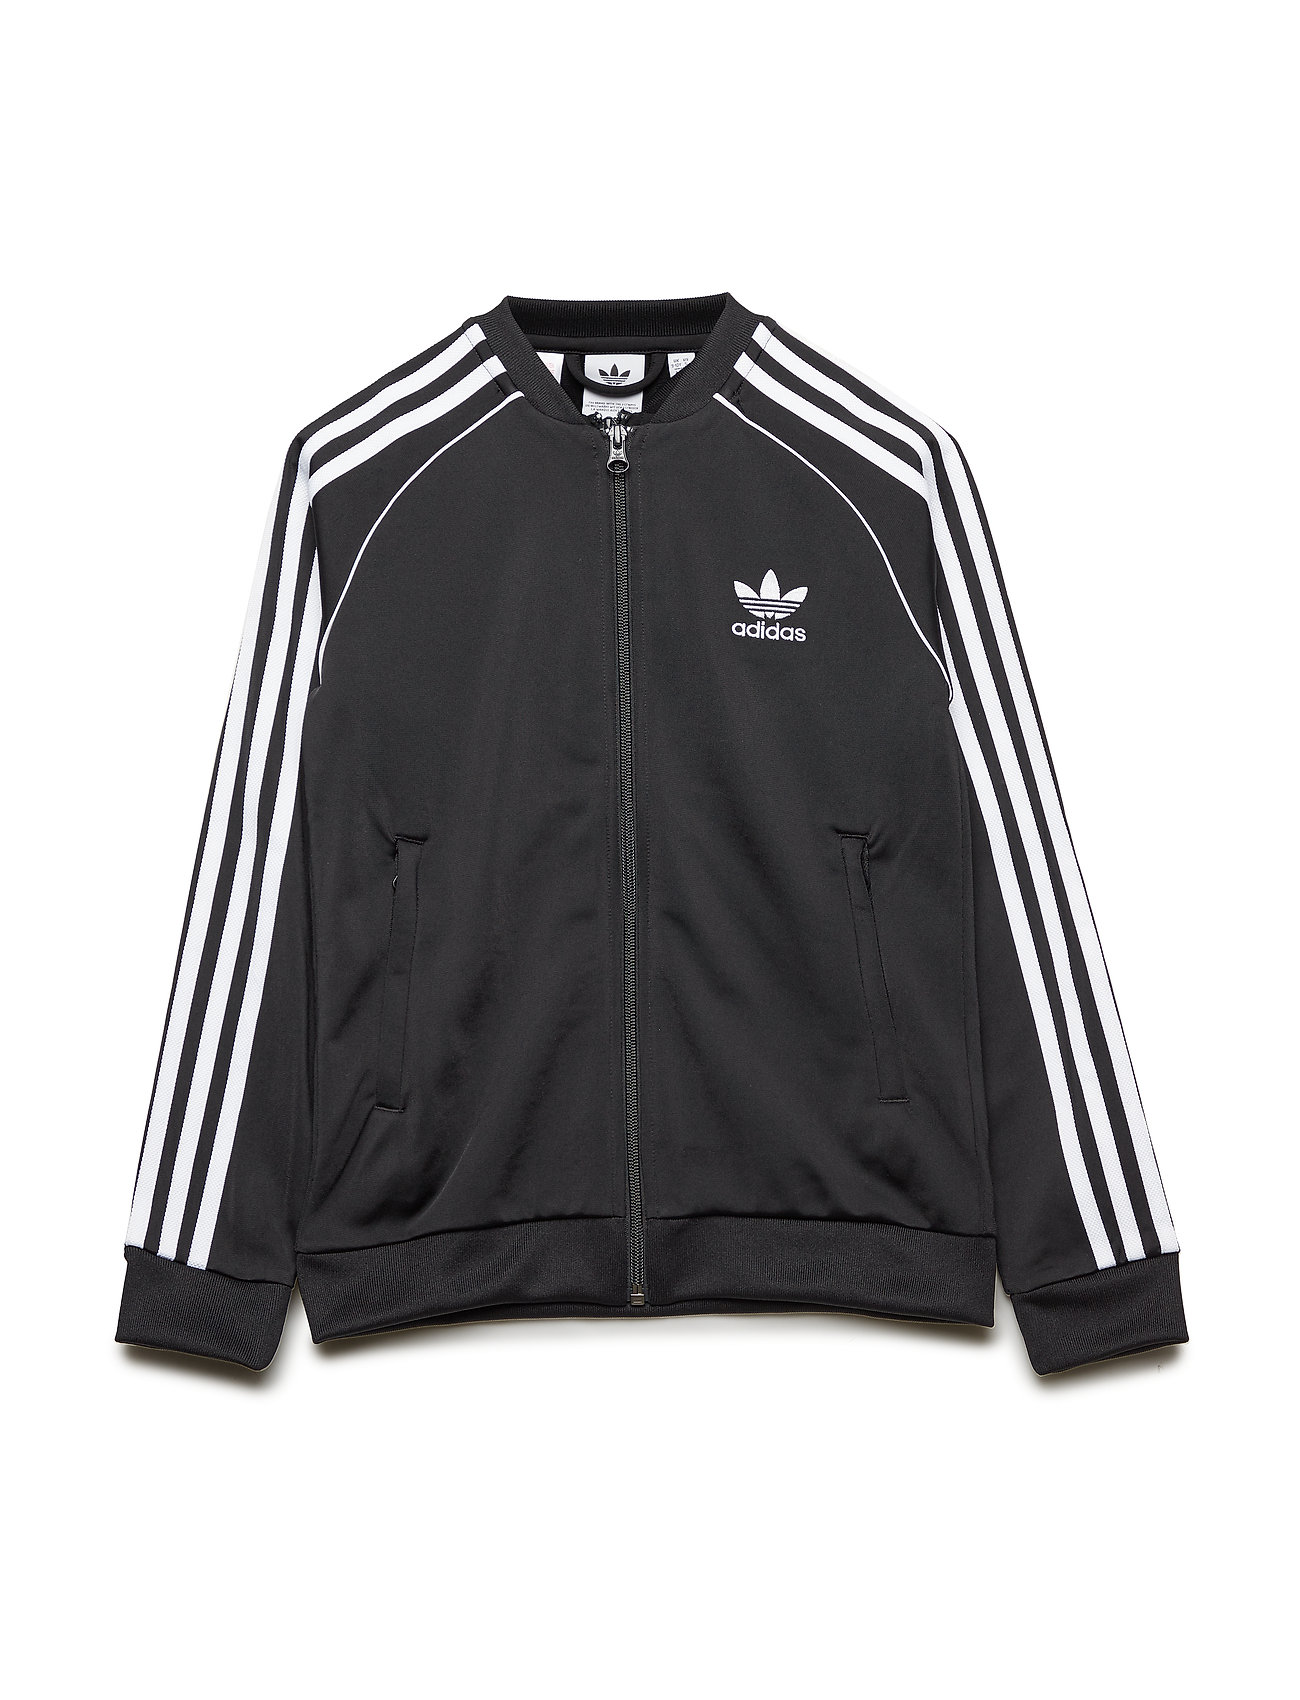 adidas Originals SUPERSTAR TOP - BLACK/WHITE